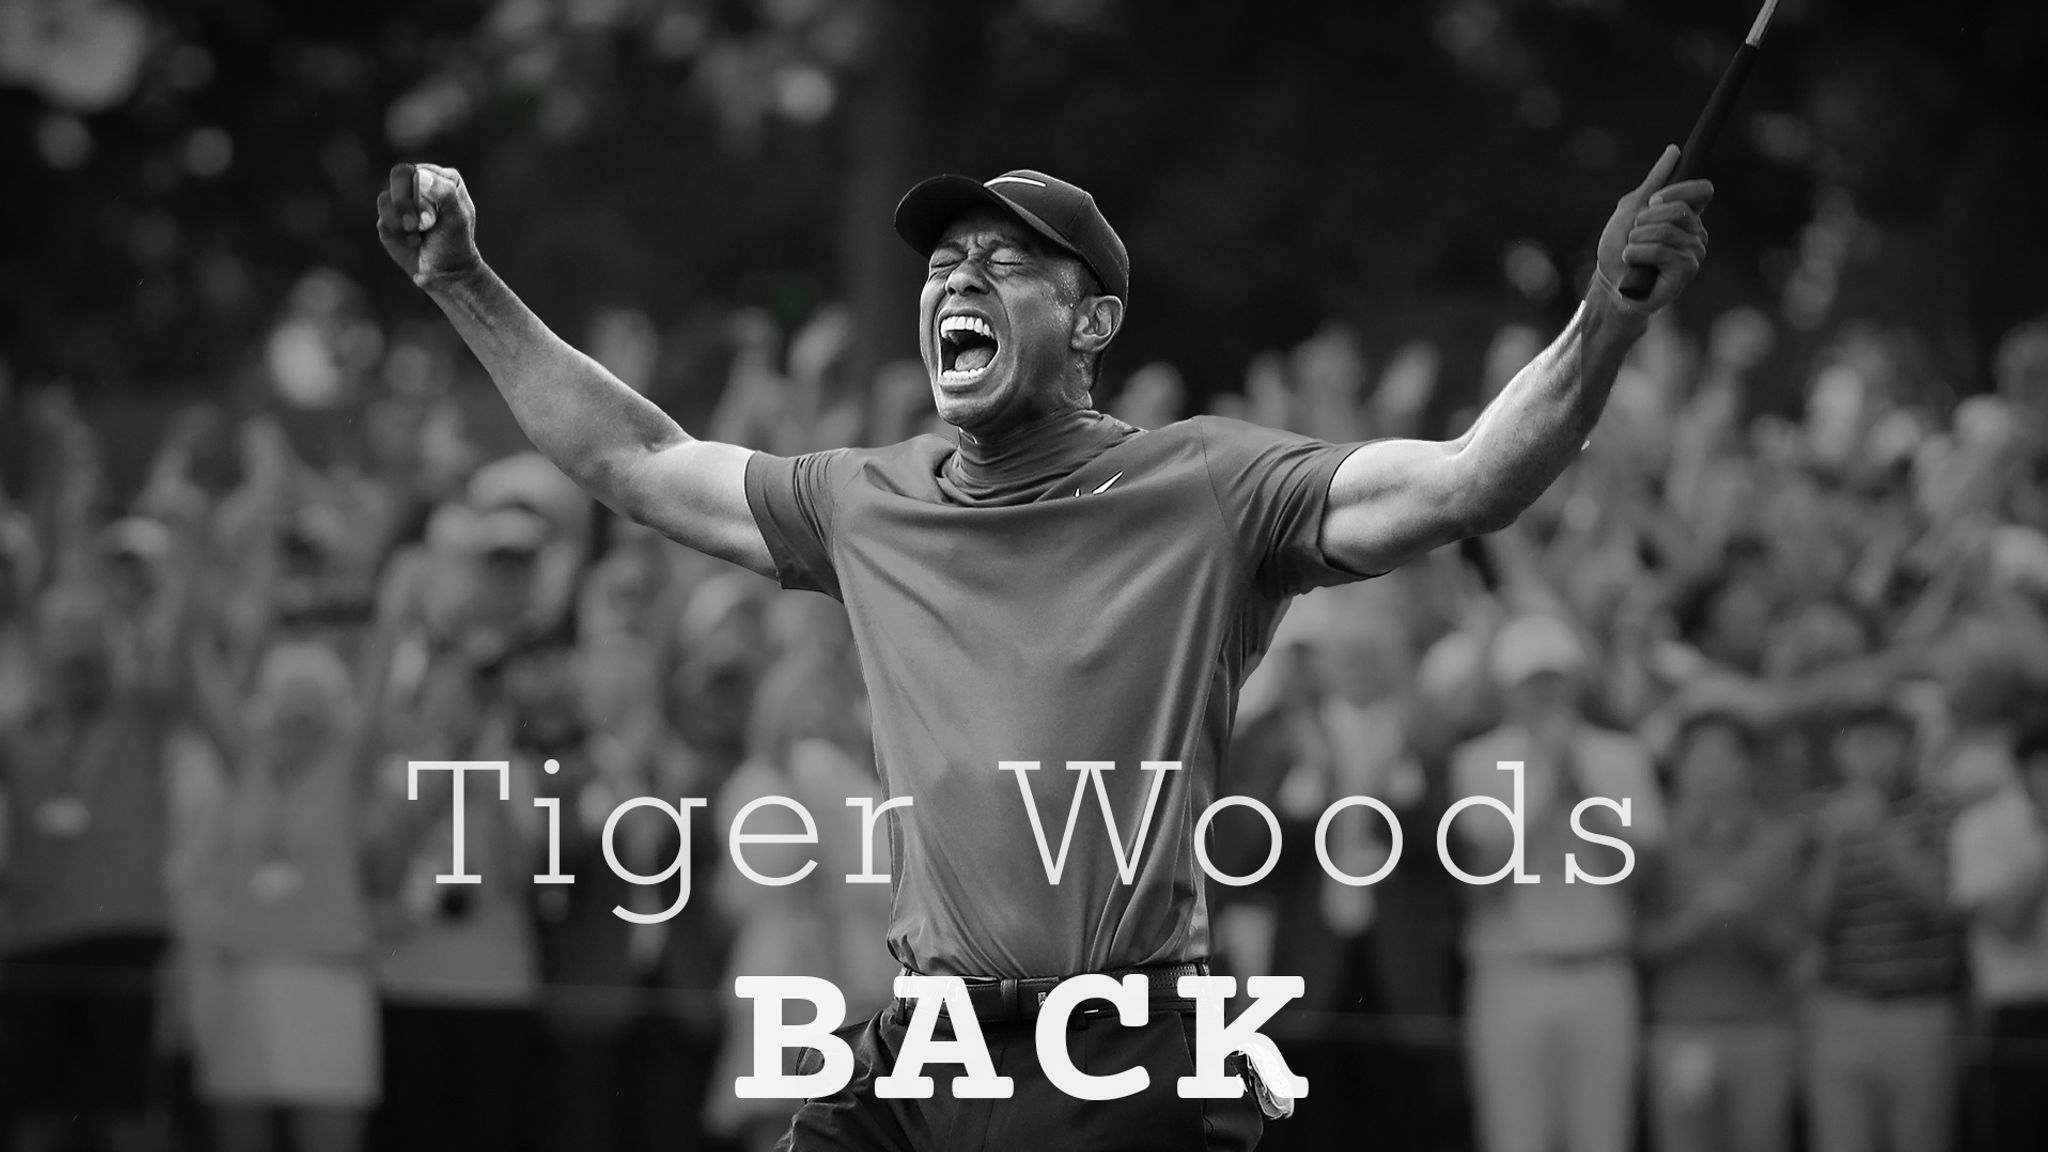 tiger woods documentary Tiger Woods film headlines new Sky Documentaries channel | News